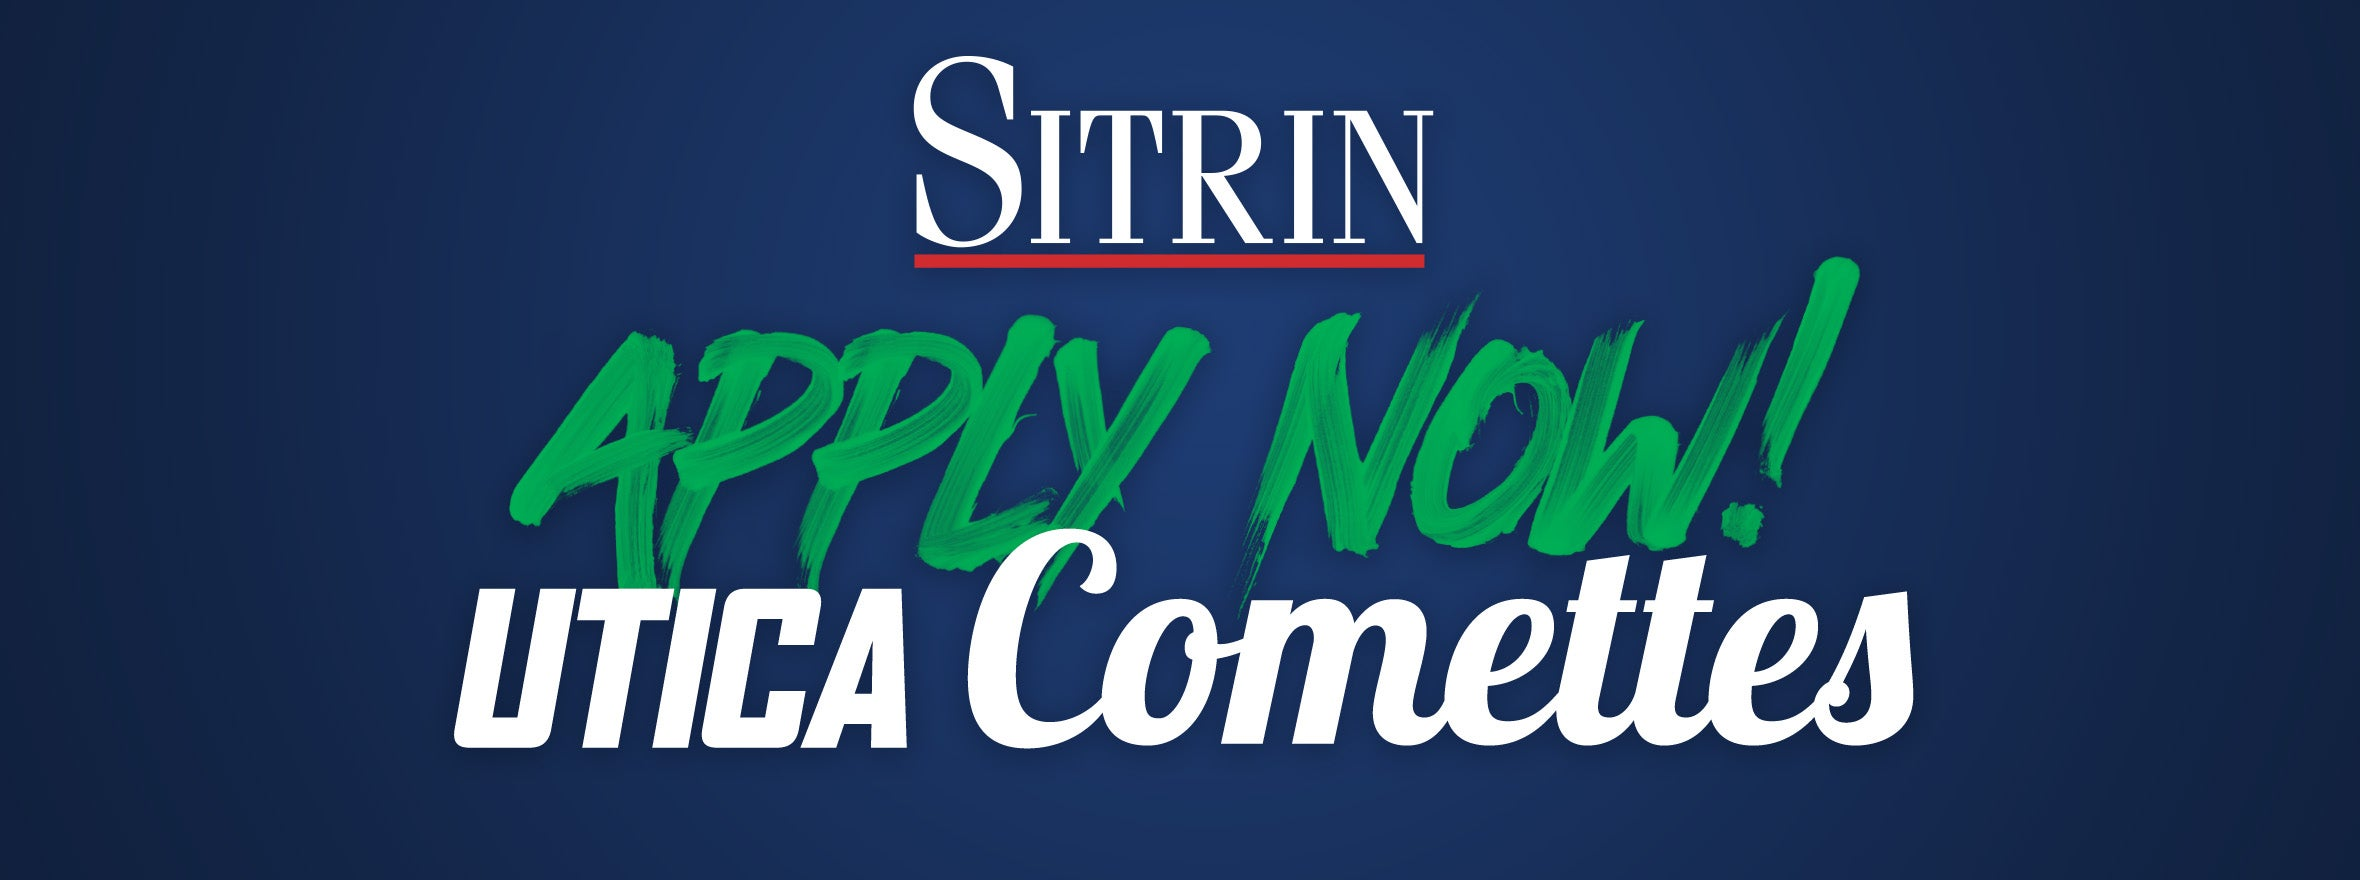 COMETS TO BRING BACK SITRIN COMETTES DANCE TEAM